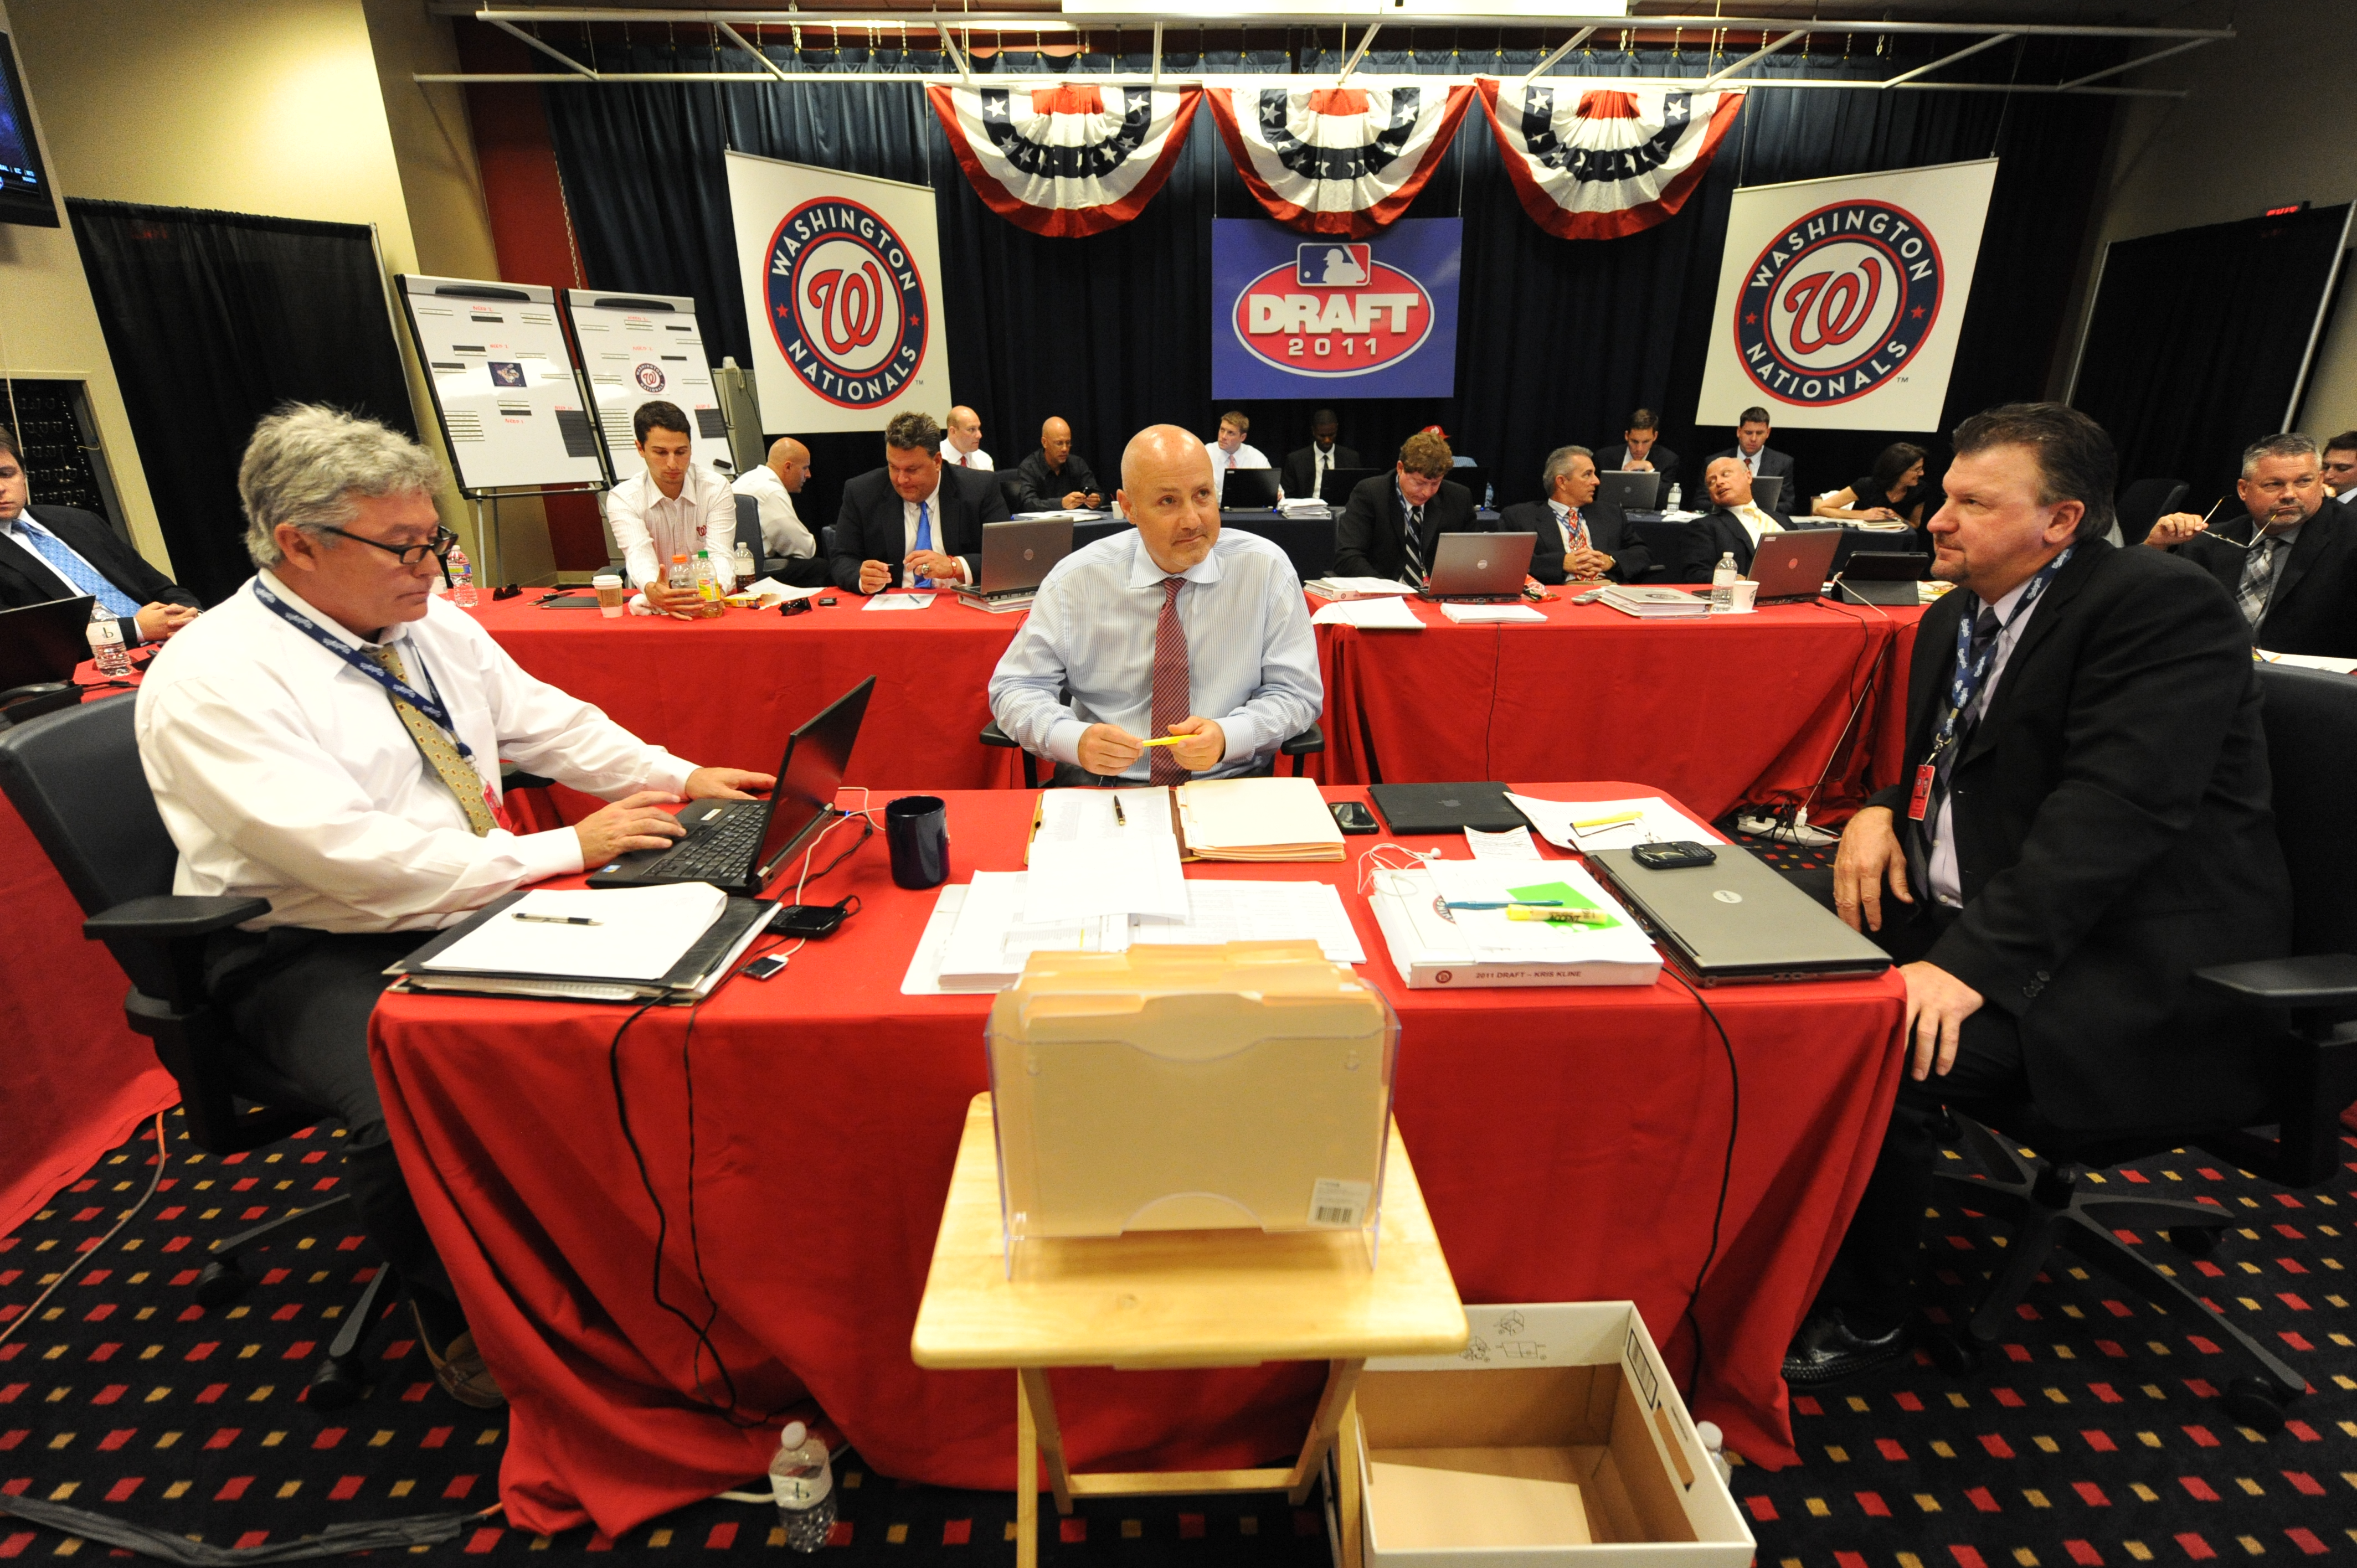 News And Notes From The 2011 First Year Player Draft